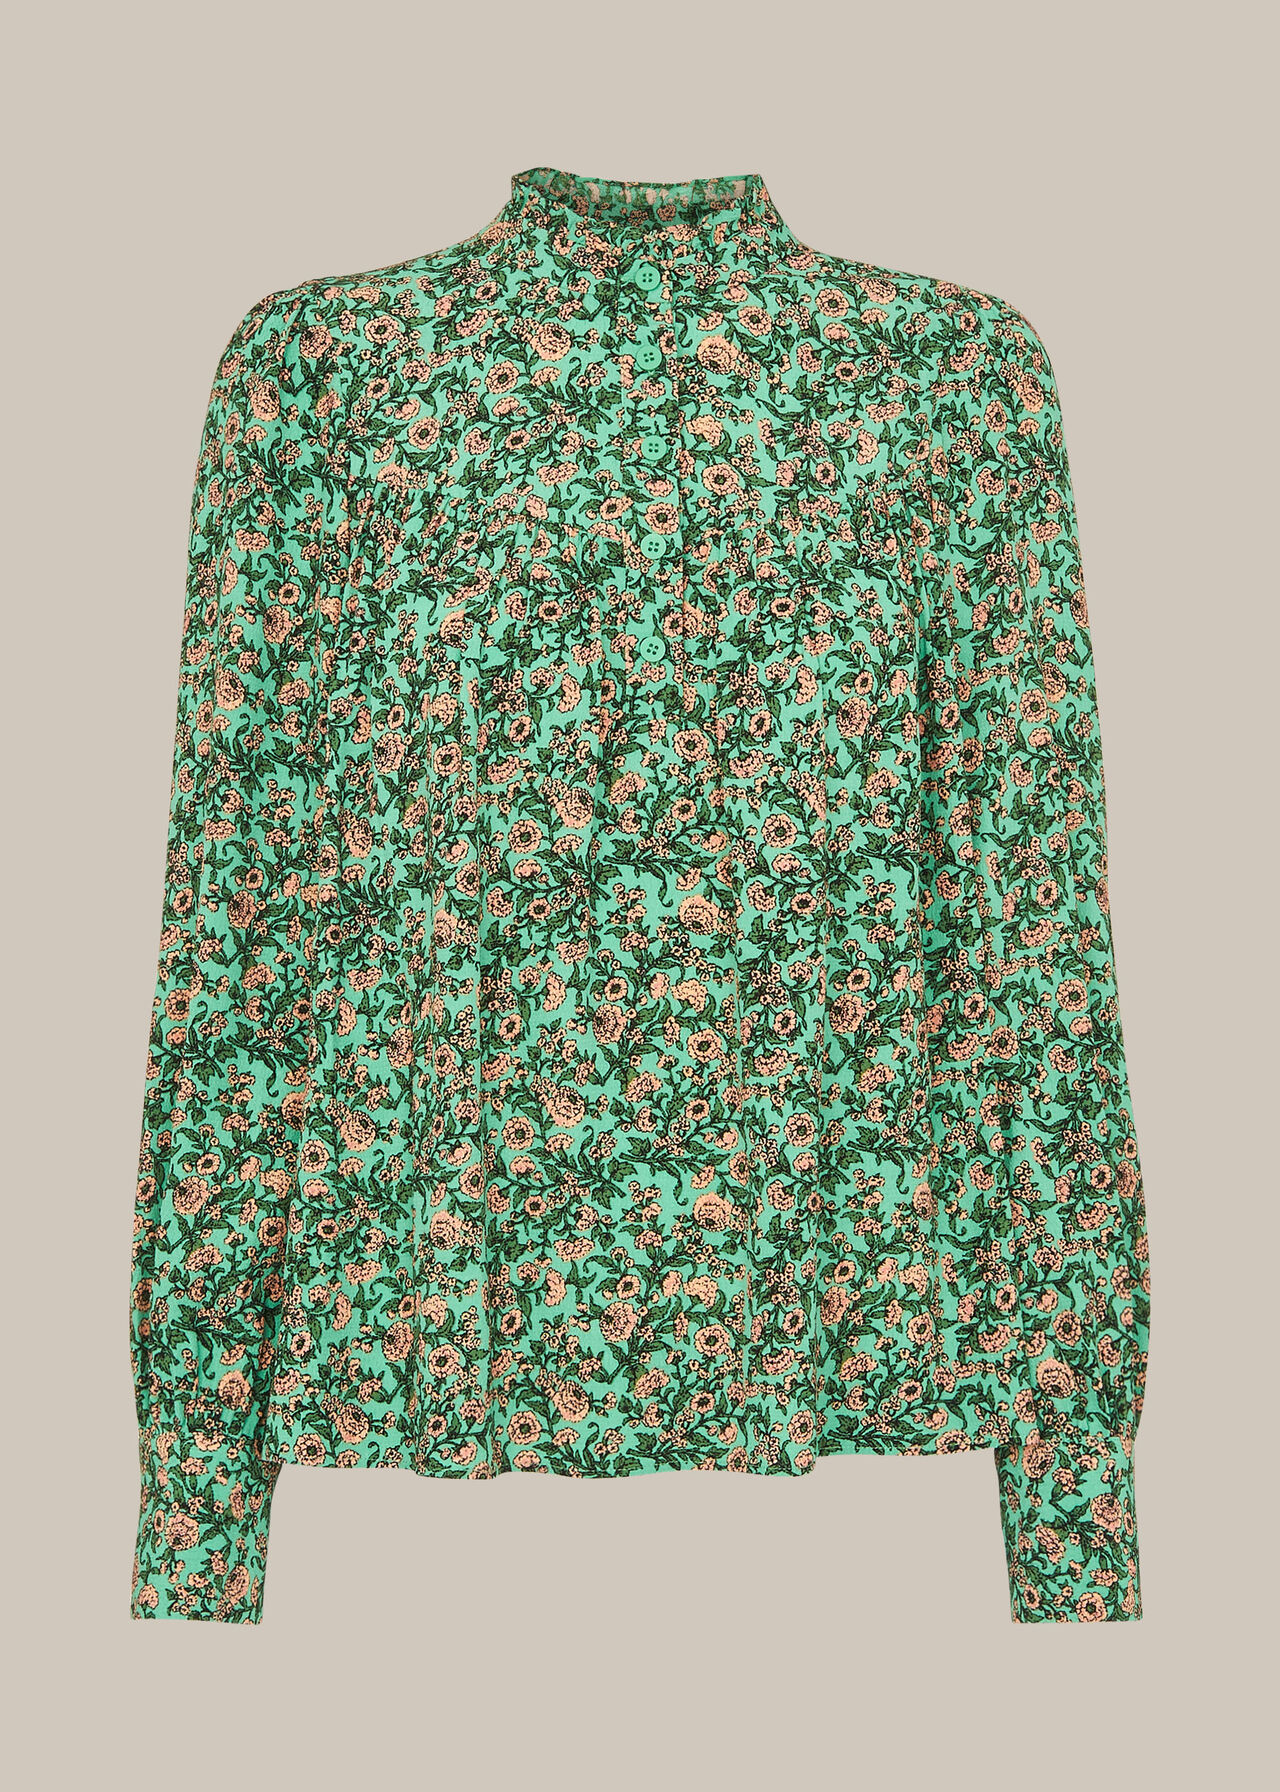 Heath Floral Print Top